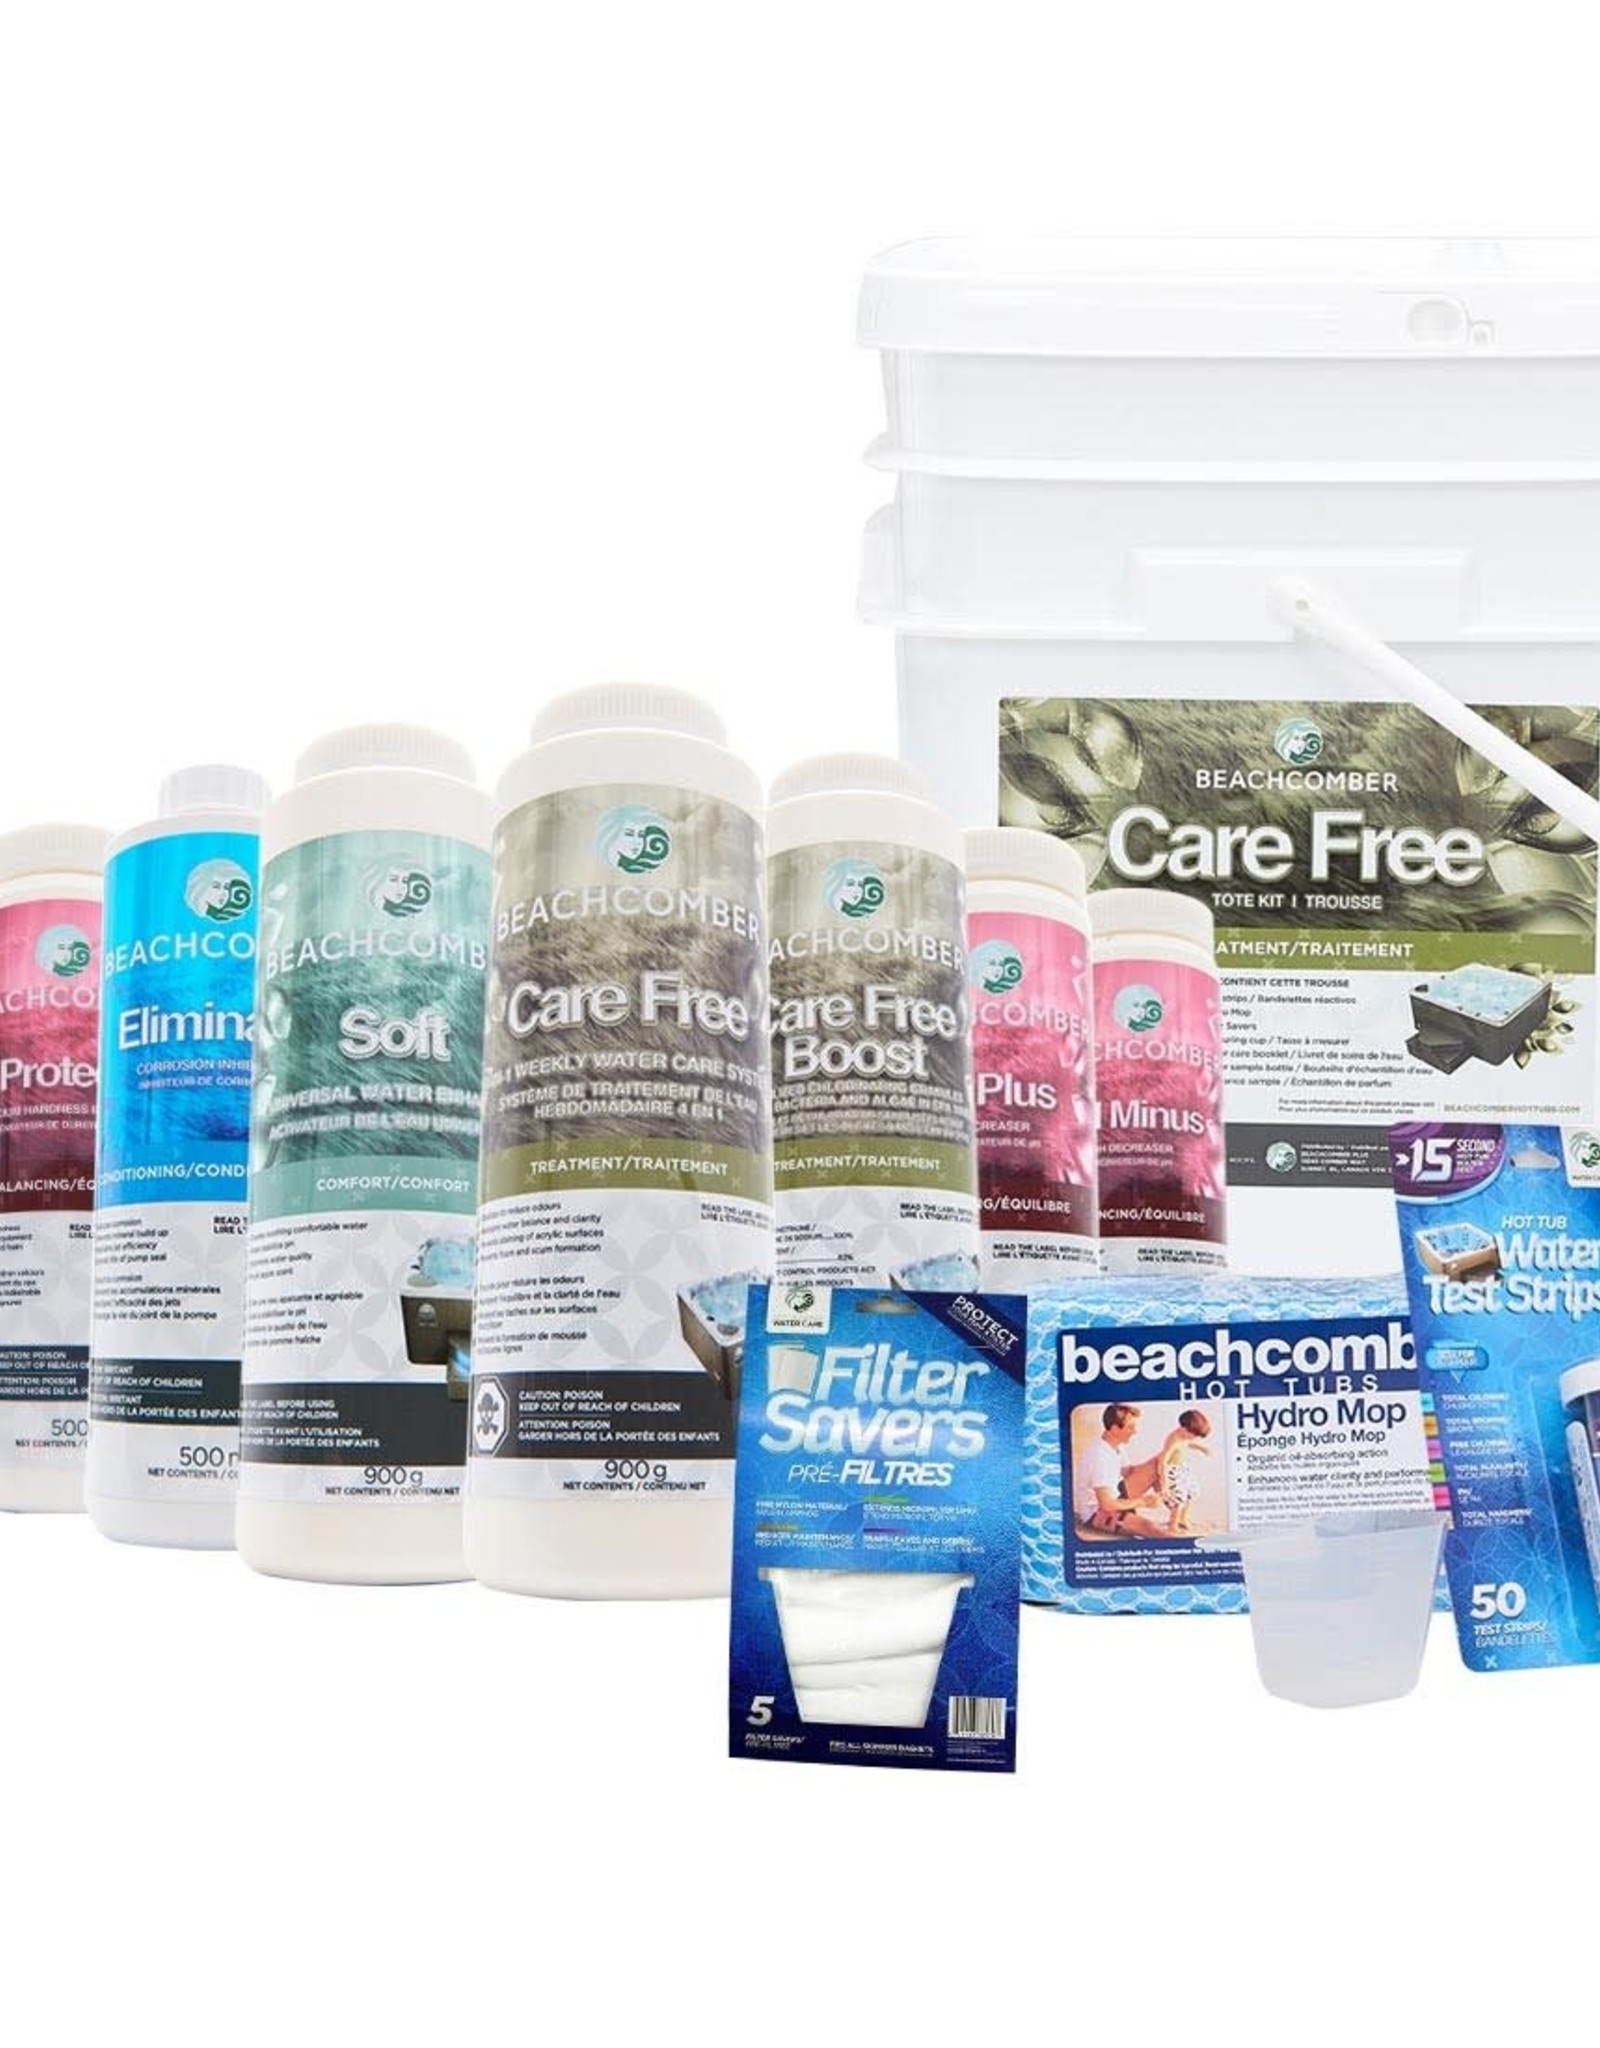 BEACHCOMBER CARE FREE TOTE - Water Care Products